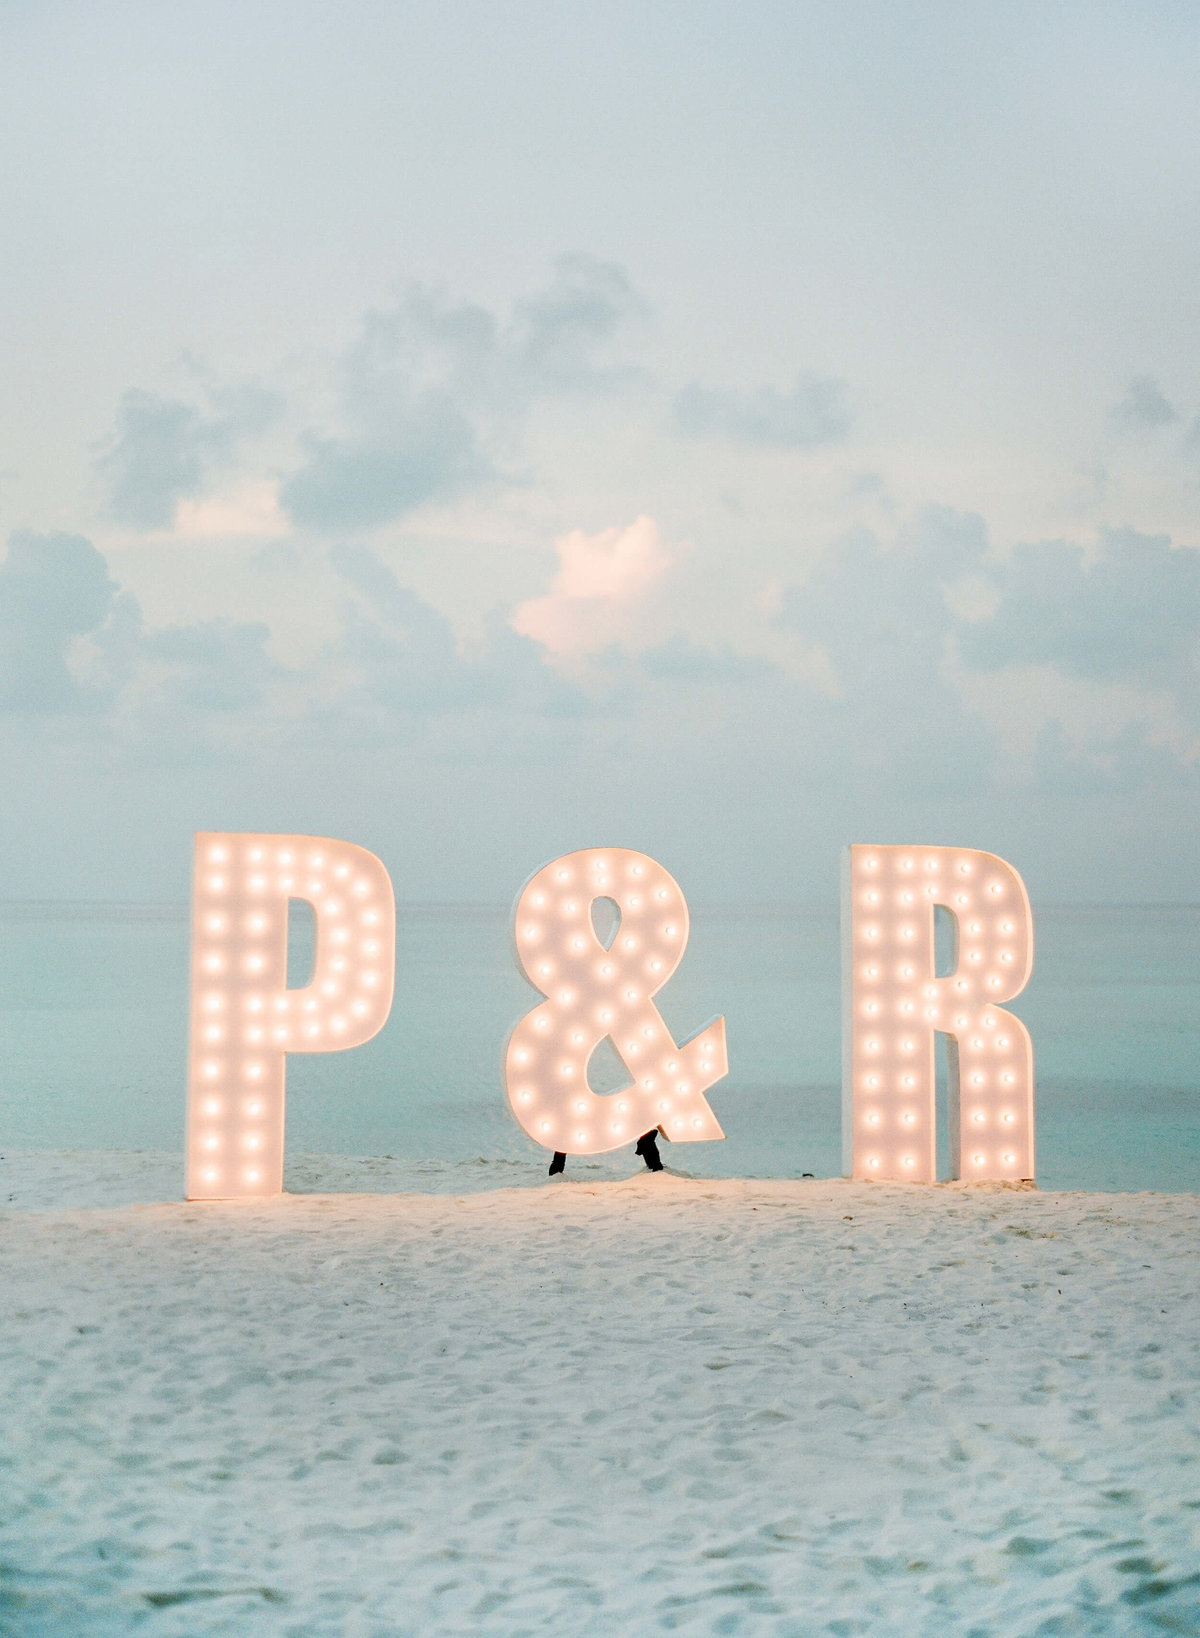 66-KTMerry-destinationwedding-beach-decor-initials-Maldives